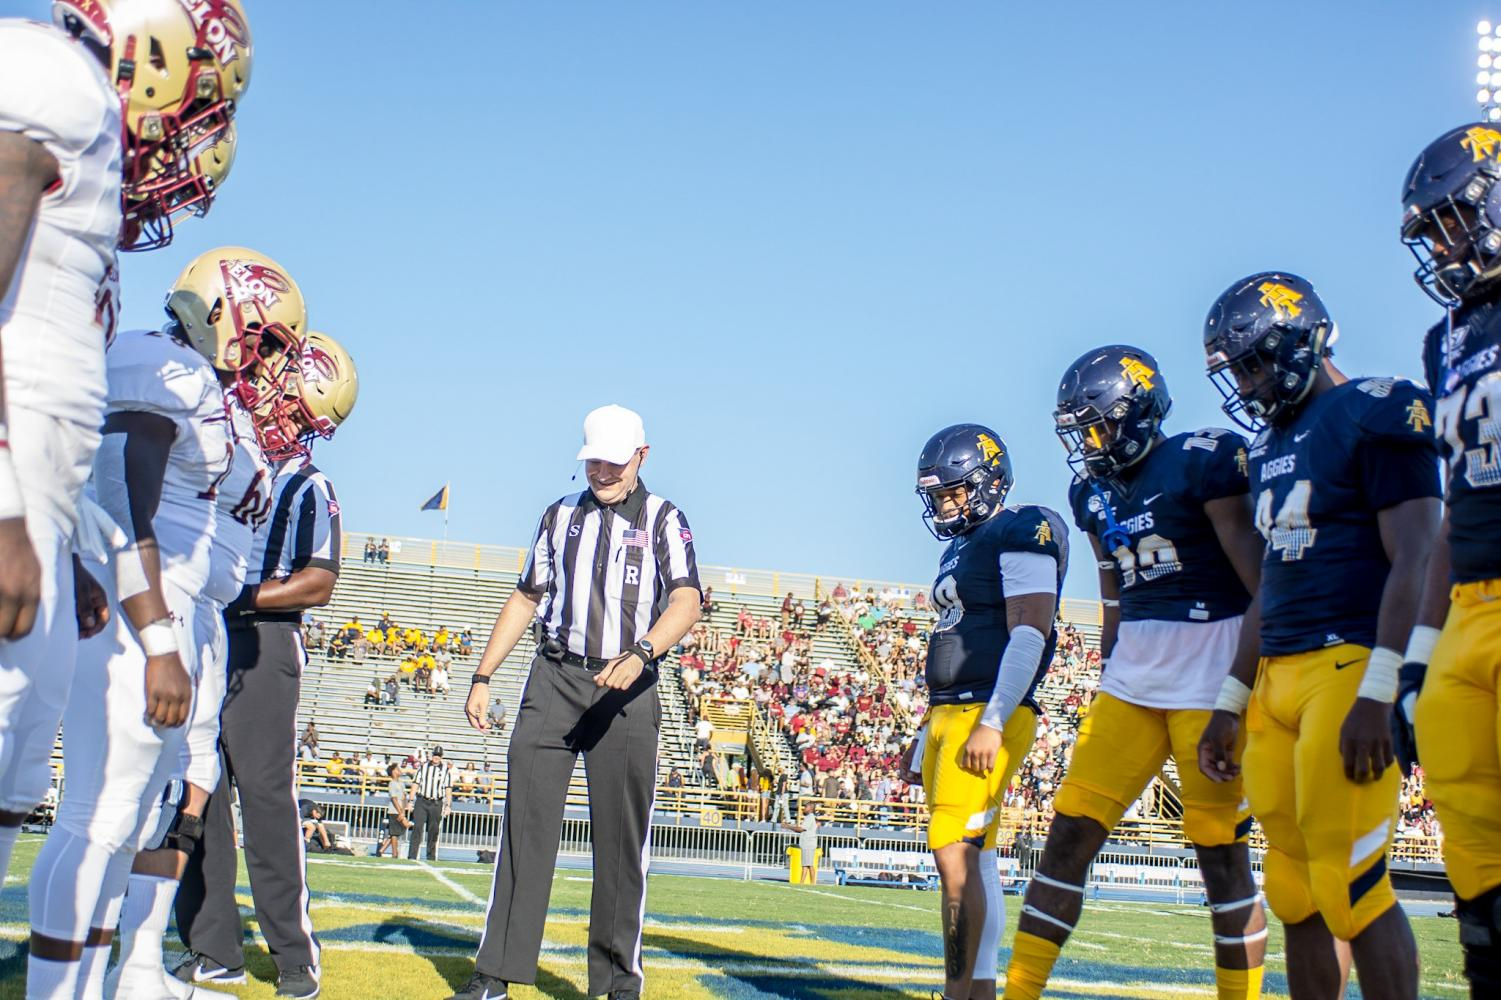 The+Aggies+and+Phoenix+face+off+during+the+coin+toss.%0AJamar+Plunkett+%7C+Photography+Editor+%7C+The+A%26T+Register